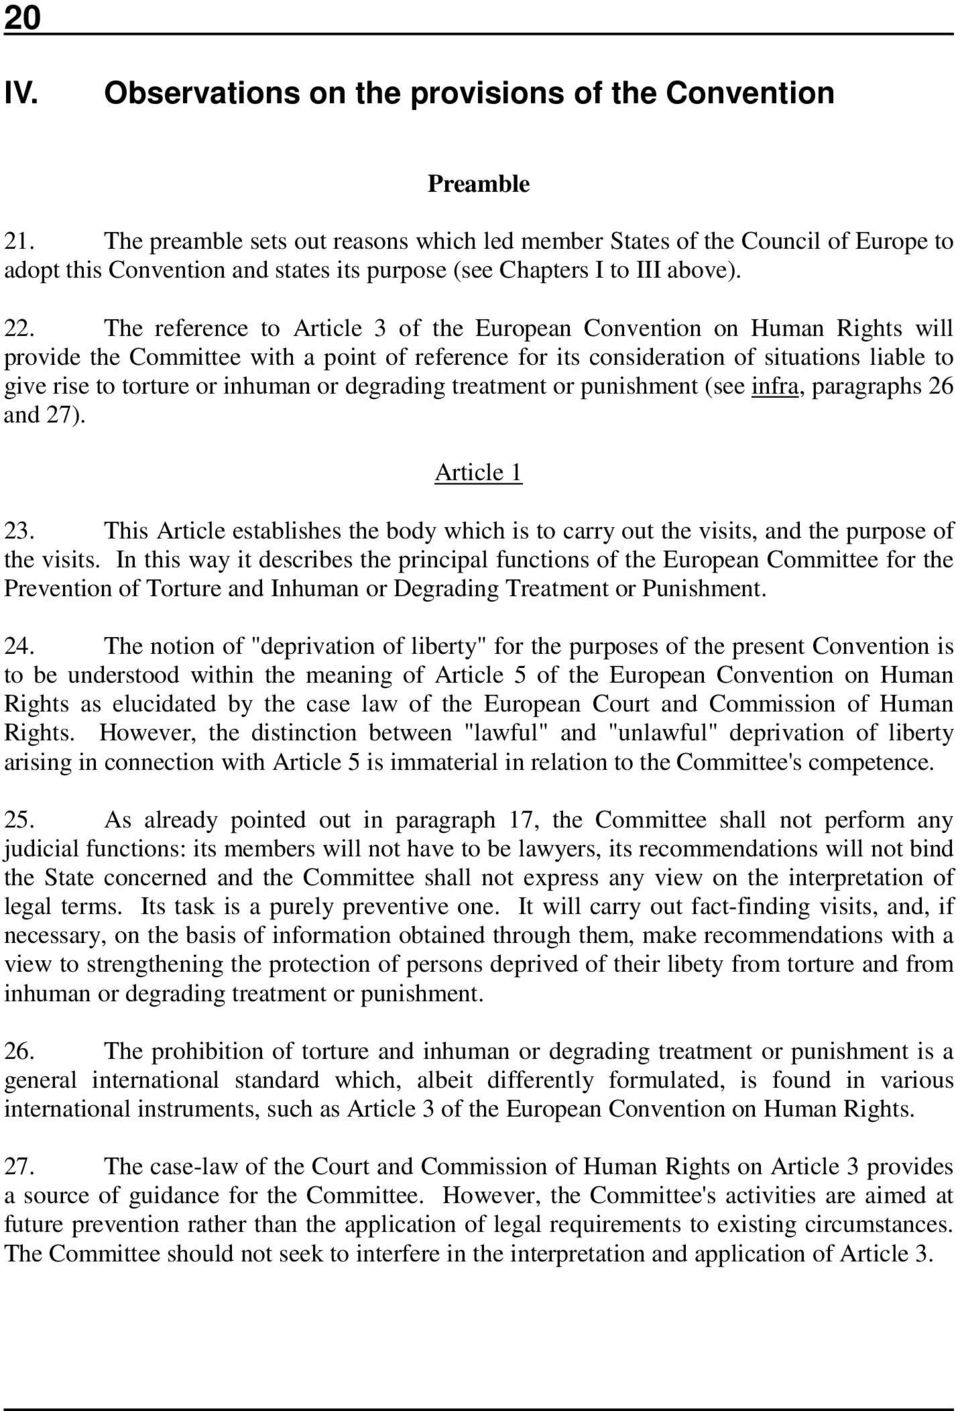 The reference to Article 3 of the European Convention on Human Rights will provide the Committee with a point of reference for its consideration of situations liable to give rise to torture or